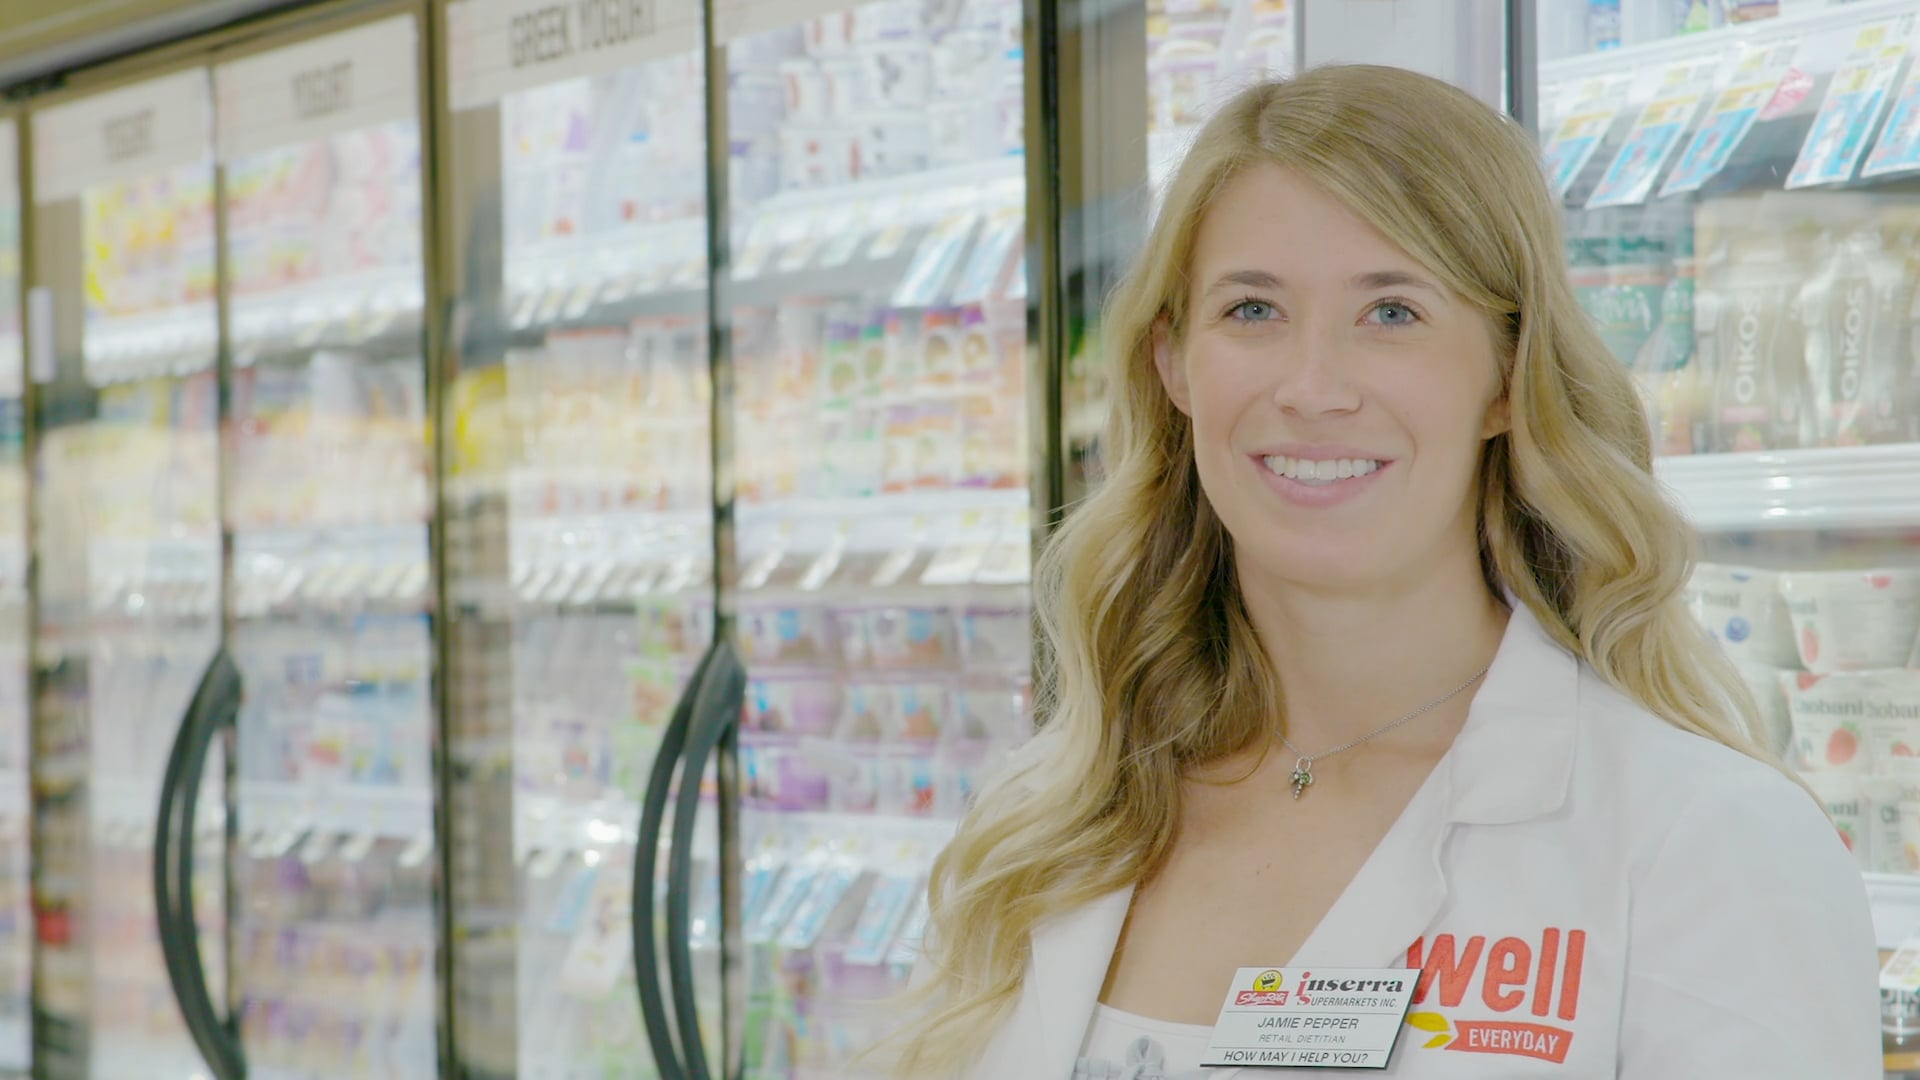 New Jersey Academy of Nutrition and Dietetics Campaign Video 1